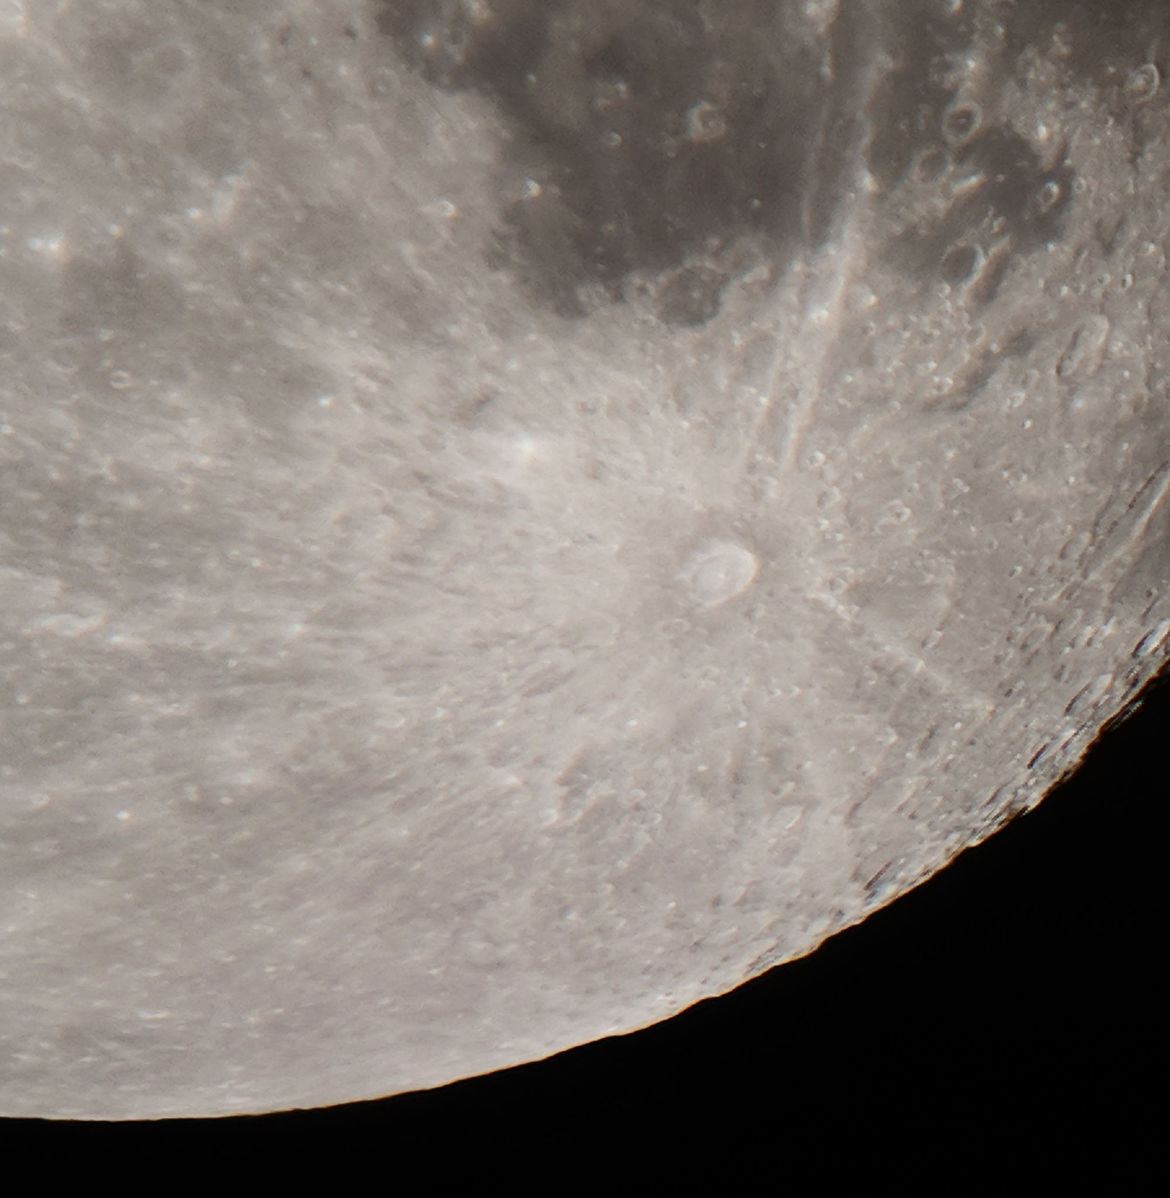 The huge lunar crater Tycho has a tremendous ray system reaching over a thousand kilometers, collapsed plumes from the impact that formed it. Credit: Phil Plait